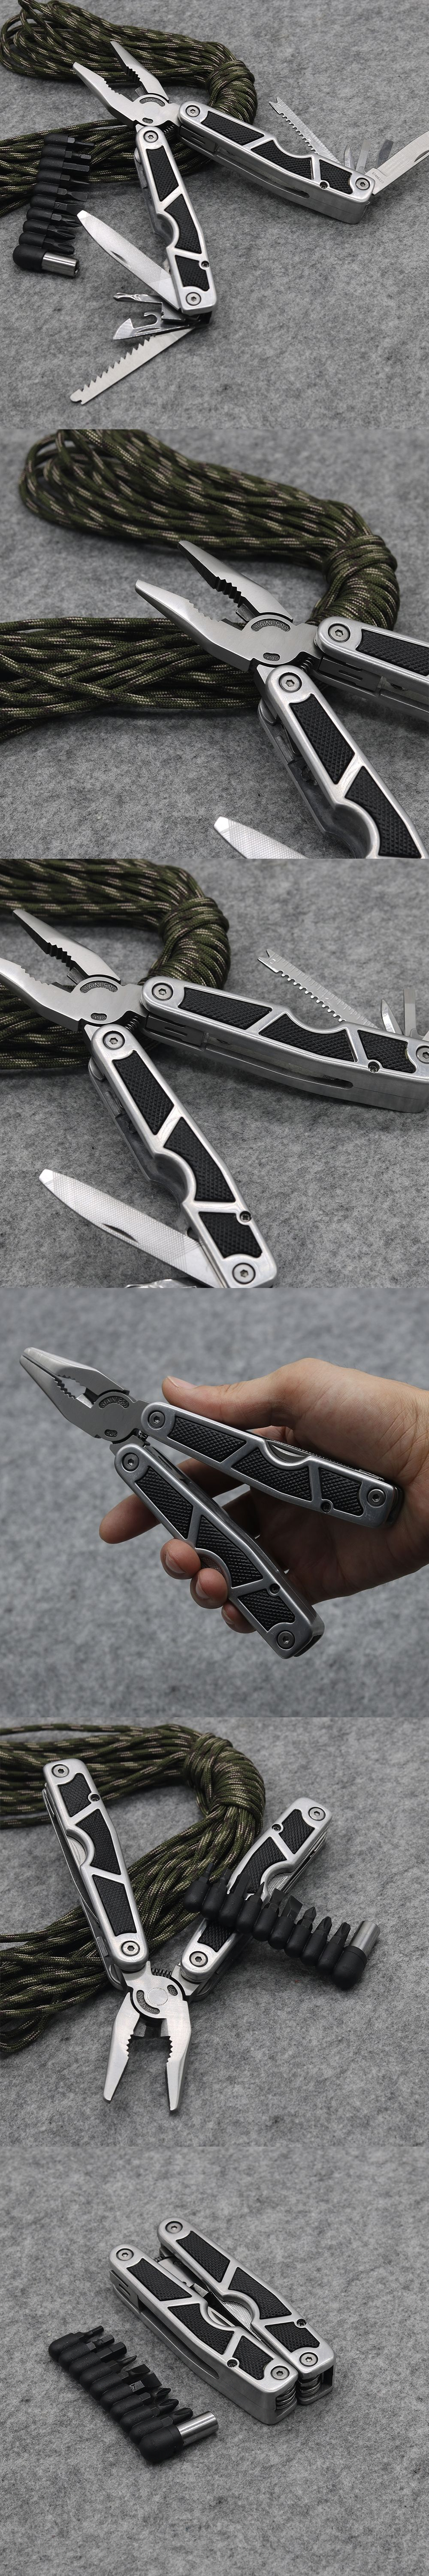 multifunctional tool pliers folding knife survival outdoor edc gear